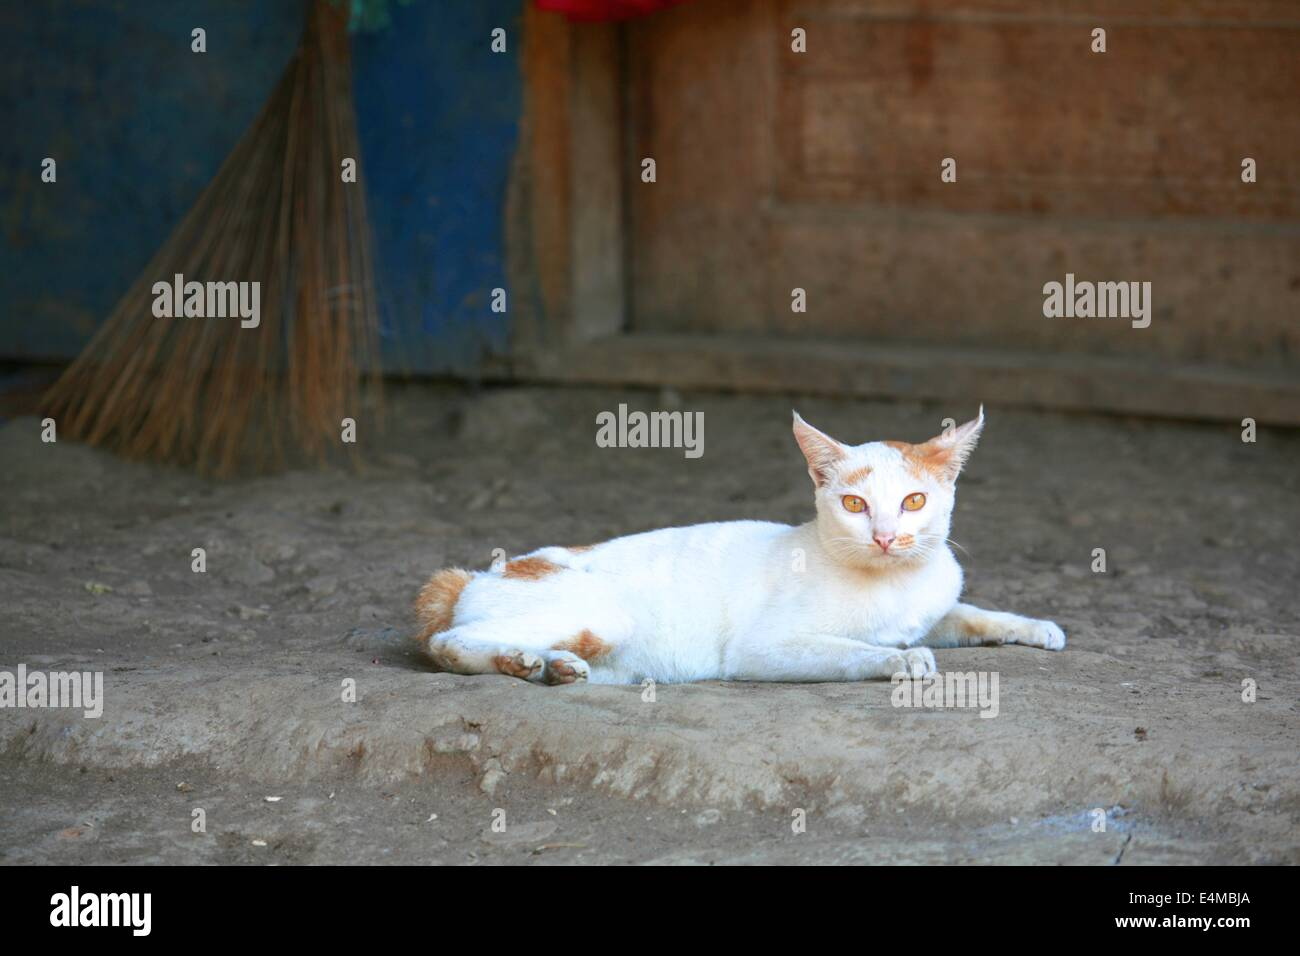 A white cat with yellow eyes in Java, Indonesia - Stock Image